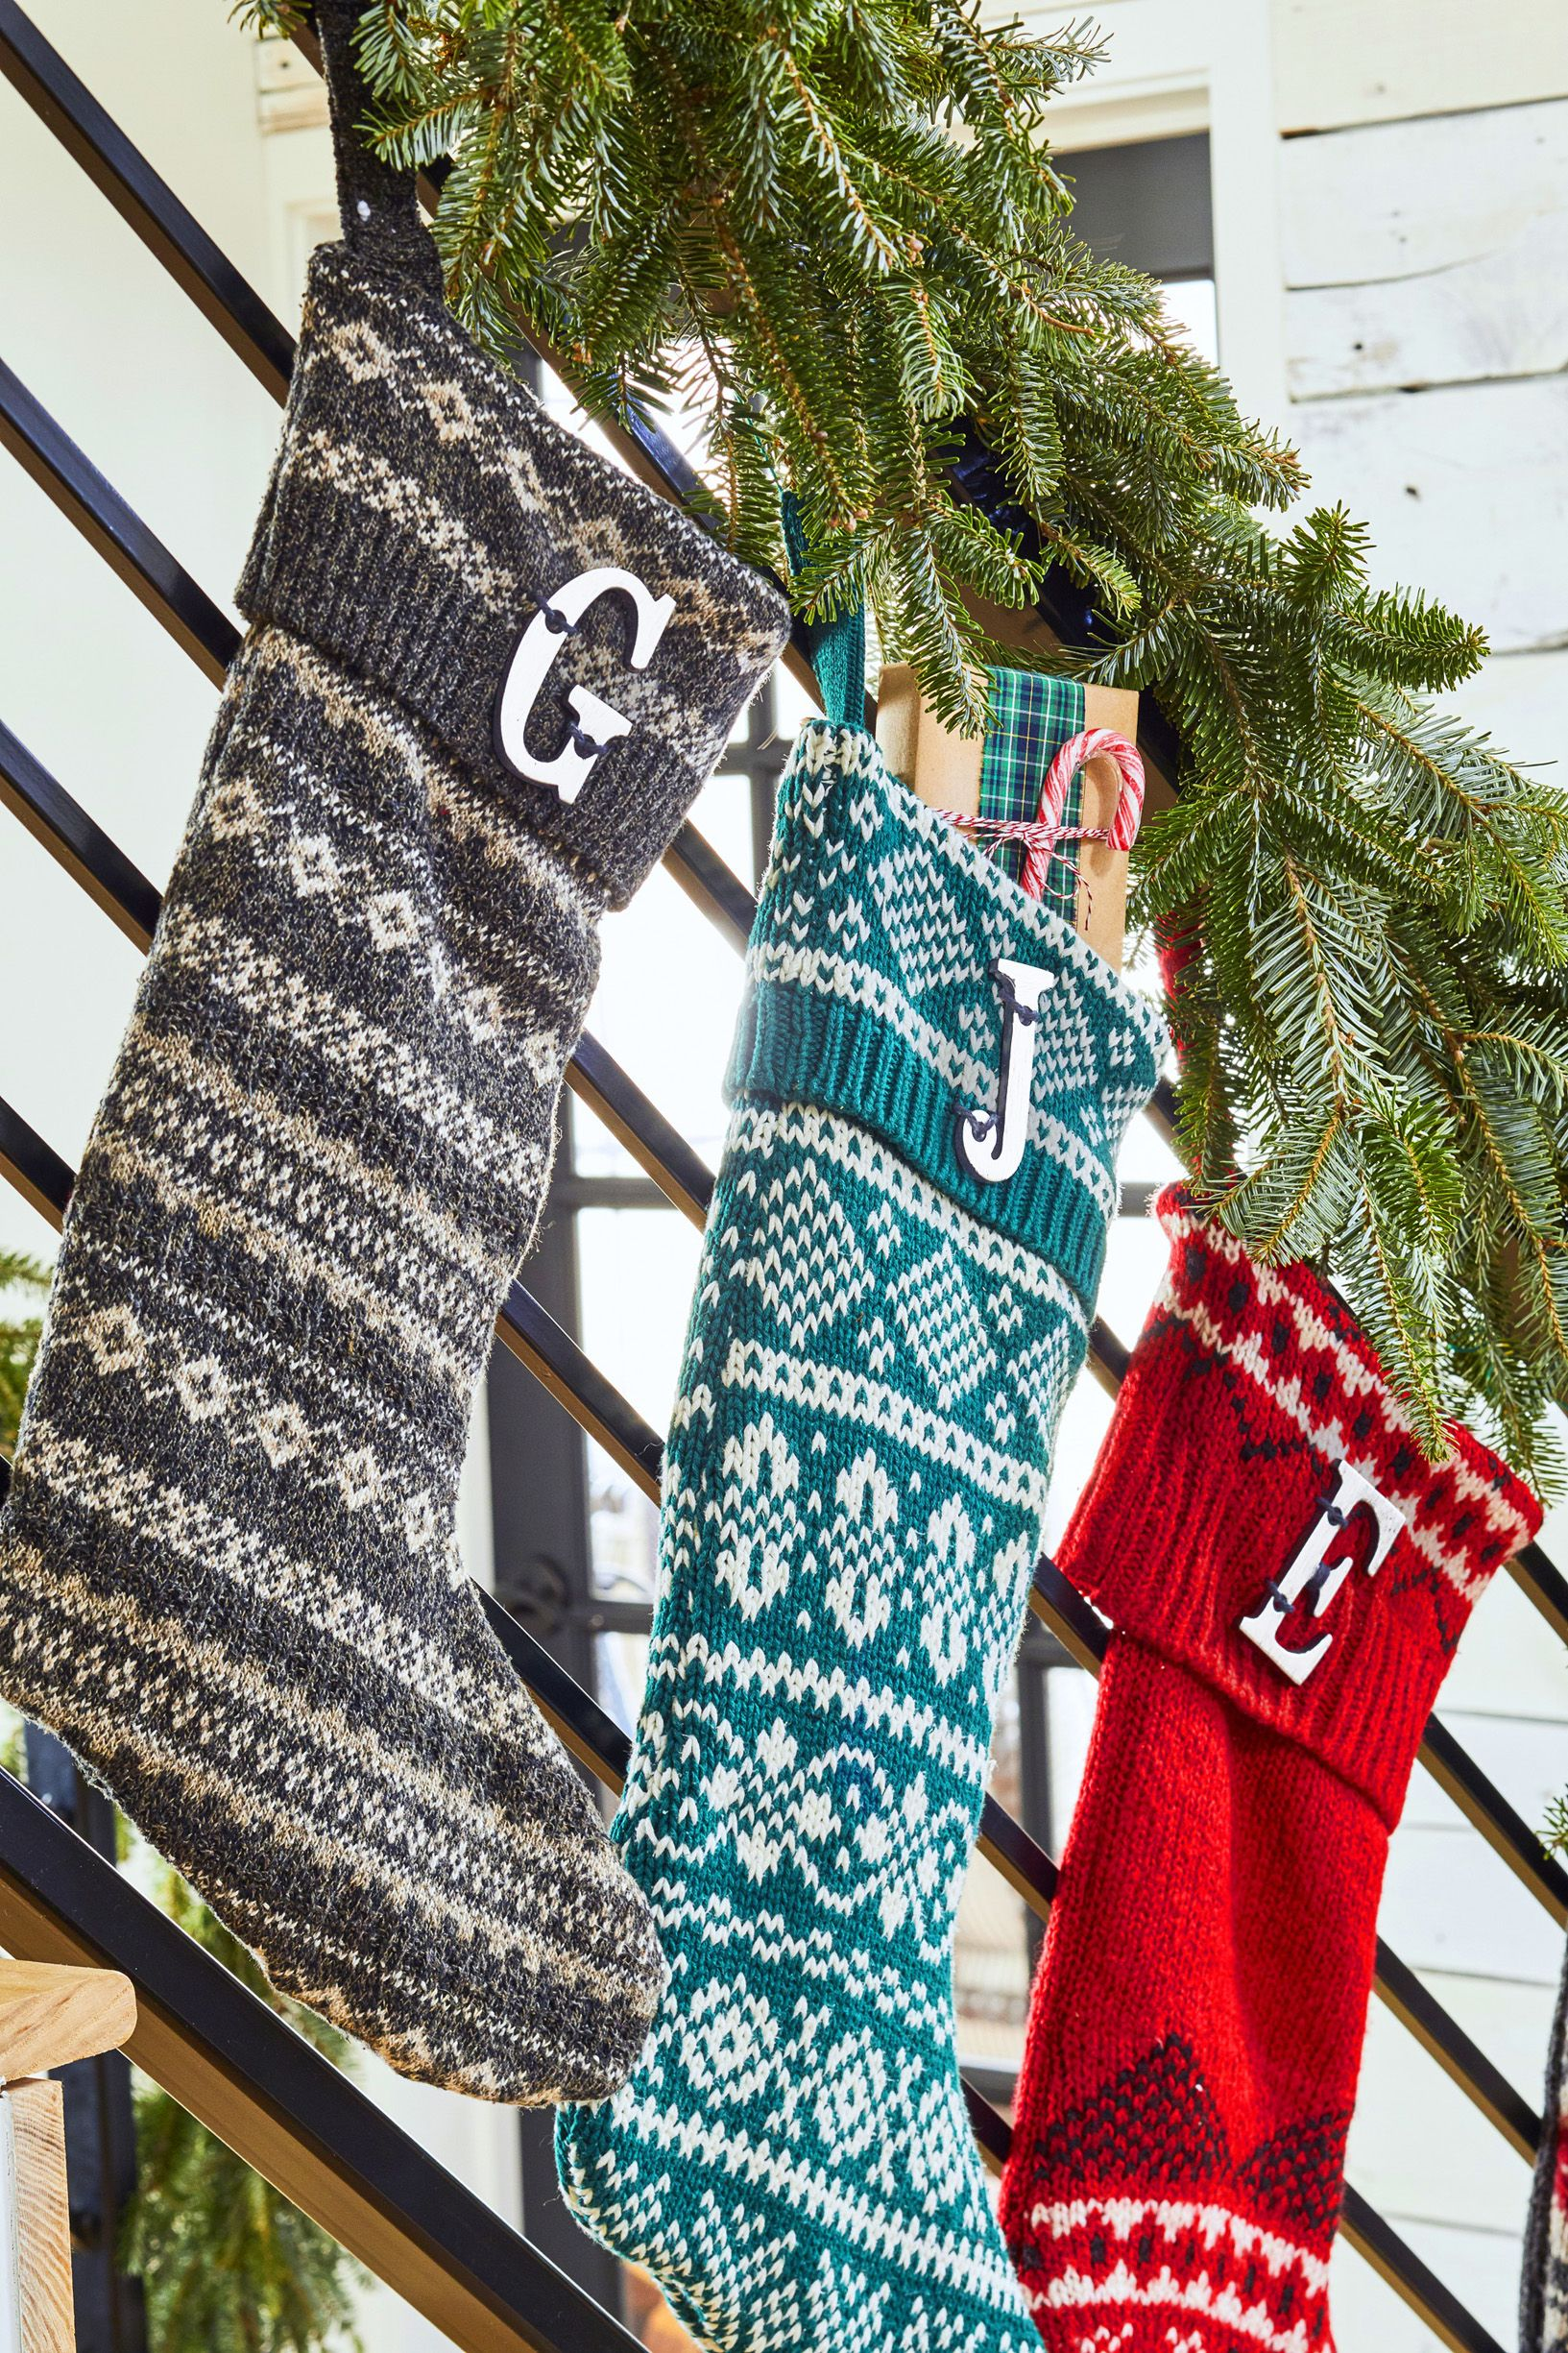 Christmas Decorations English Socks Halloween Ornaments Colorful